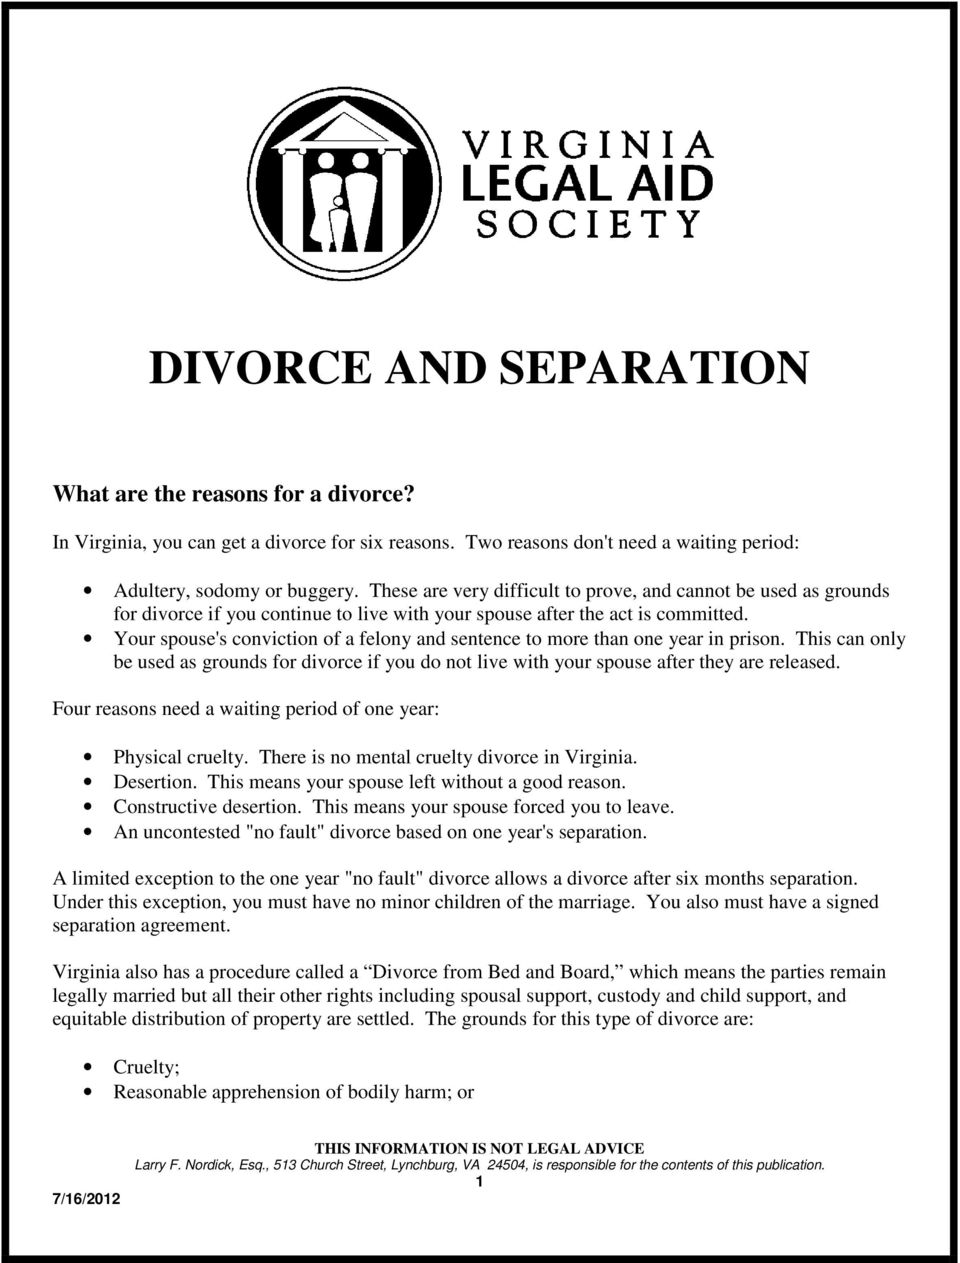 Your spouse's conviction of a felony and sentence to more than one year in prison. This can only be used as grounds for divorce if you do not live with your spouse after they are released.